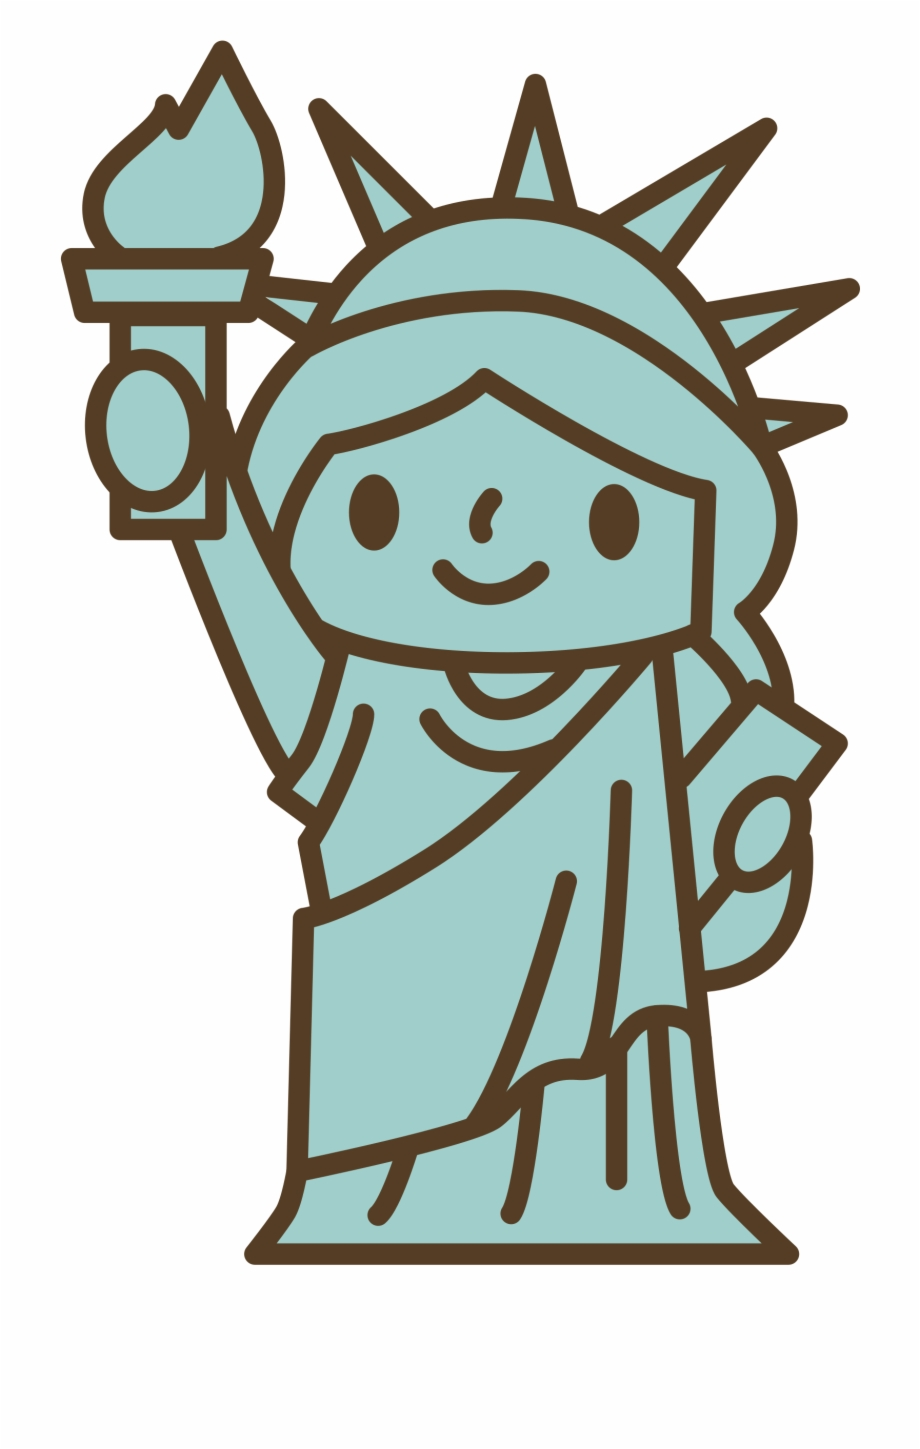 Statue Of Liberty Clipart Head Simple Statue Of Liberty Easy Drawing Transparent Png Download 1121505 Vippng Find the perfect statue of liberty image from our huge collection of stock photos. statue of liberty clipart head simple